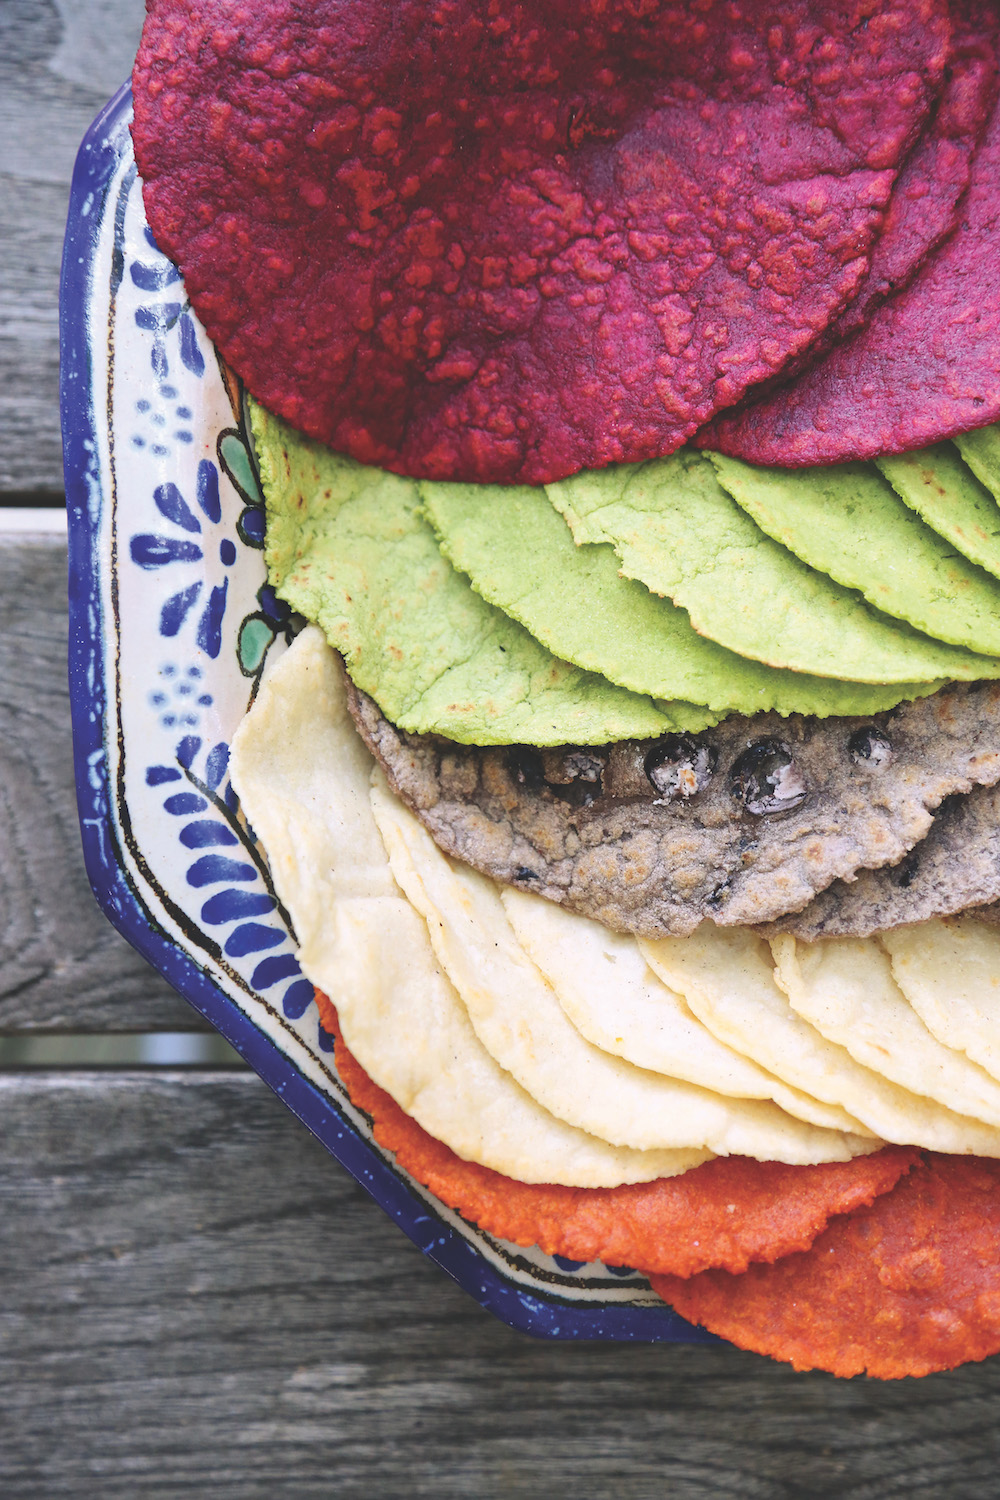 Colored Tortillas made with vegetables, herbs and chilies; Photo by Sunni Hammer